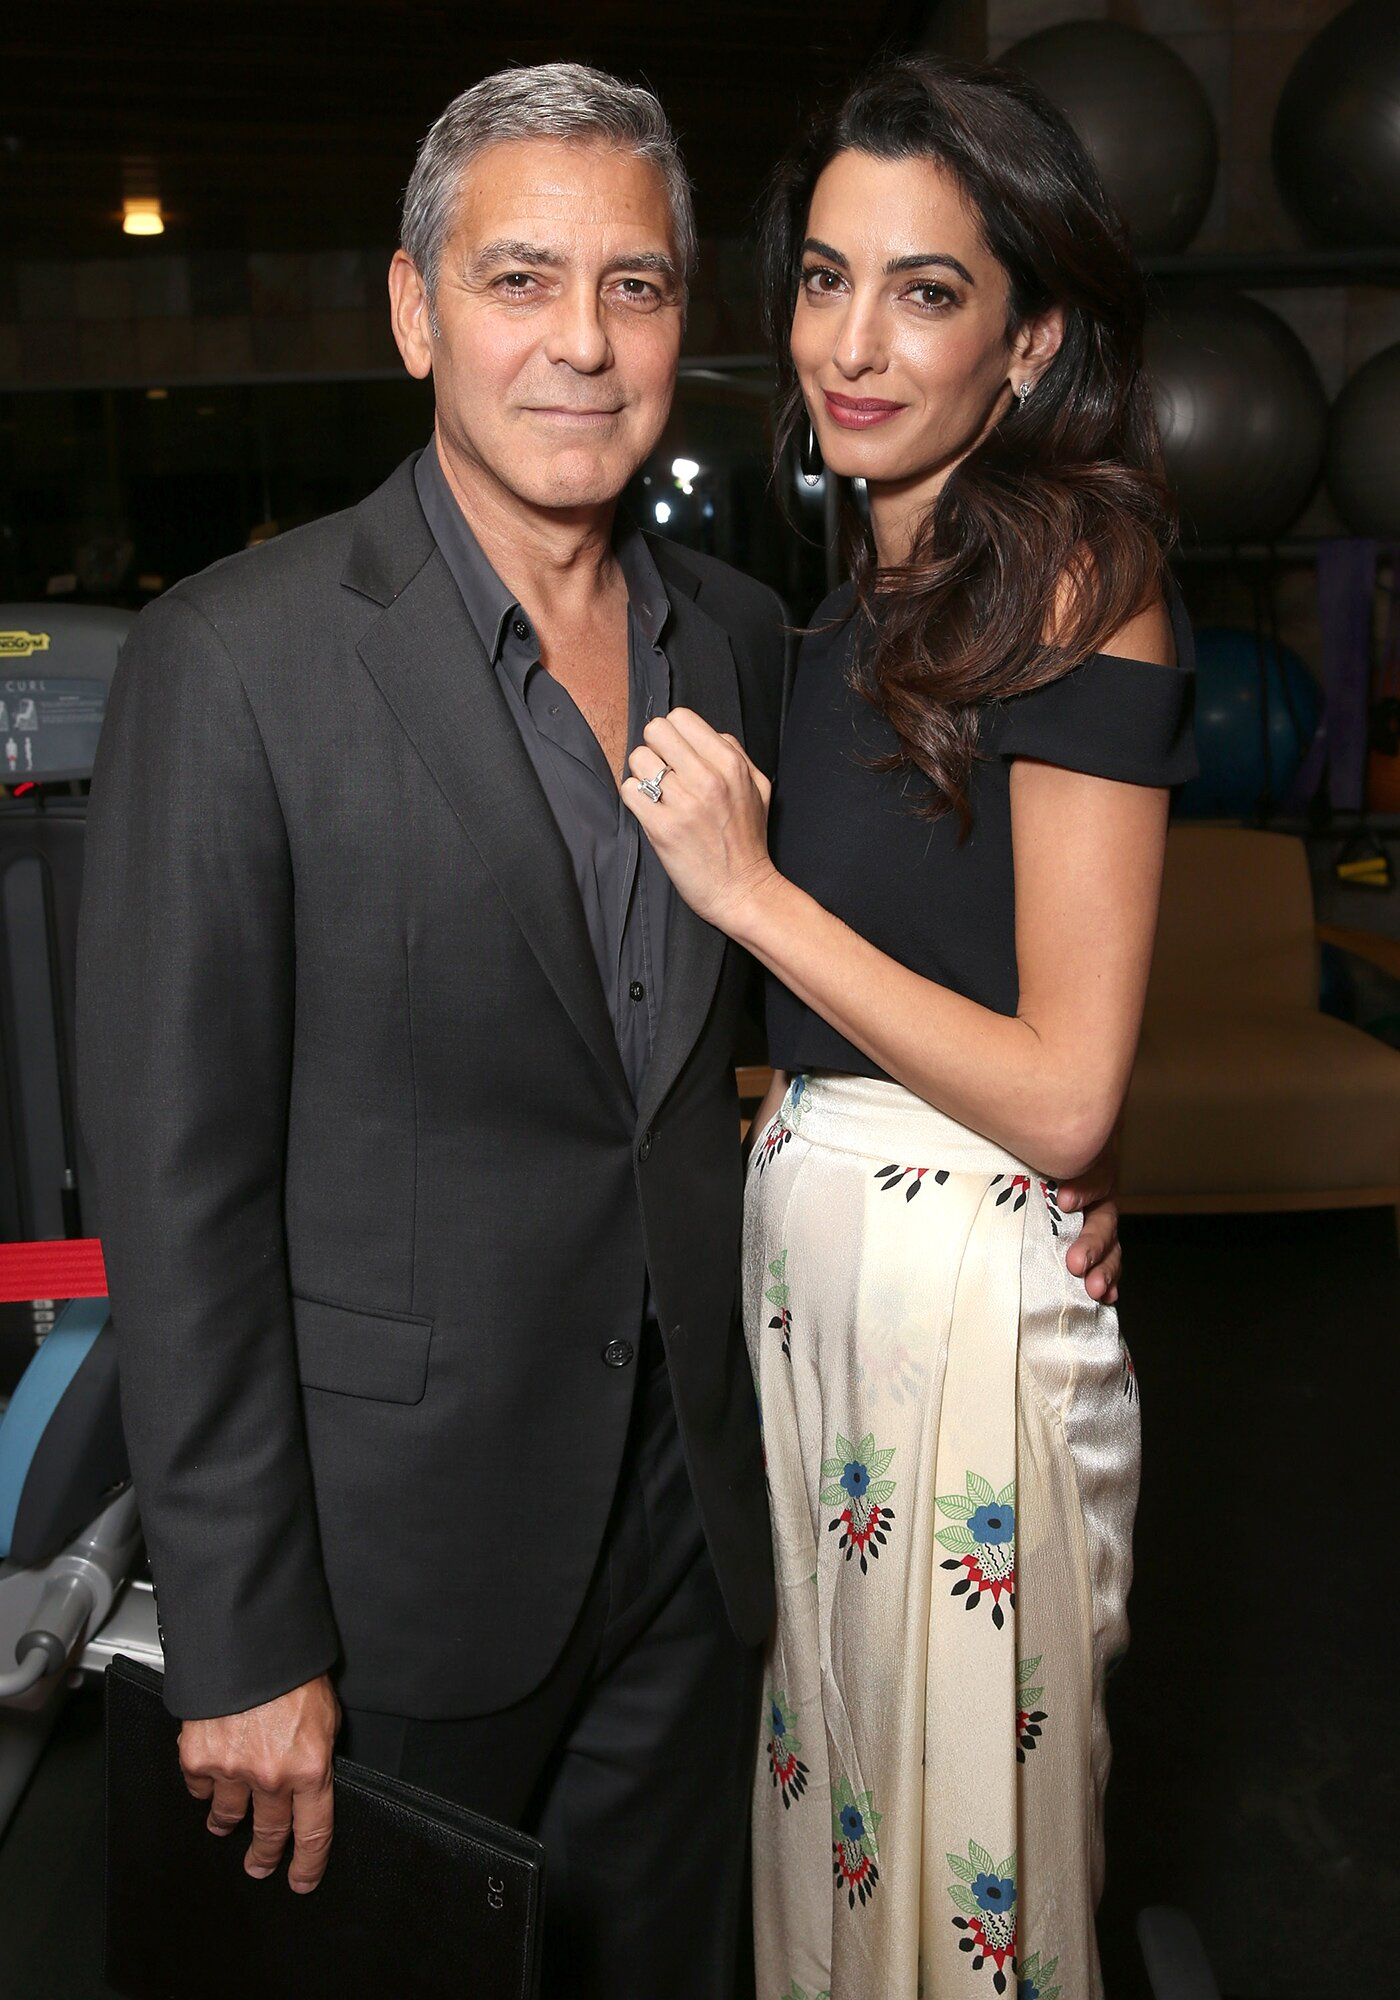 George and Amal donate more than a million dollars to coronavirus relief Image?url=https%3A%2F%2Fstatic.onecms.io%2Fwp-content%2Fuploads%2Fsites%2F20%2F2018%2F05%2Fgettyimages-612044486